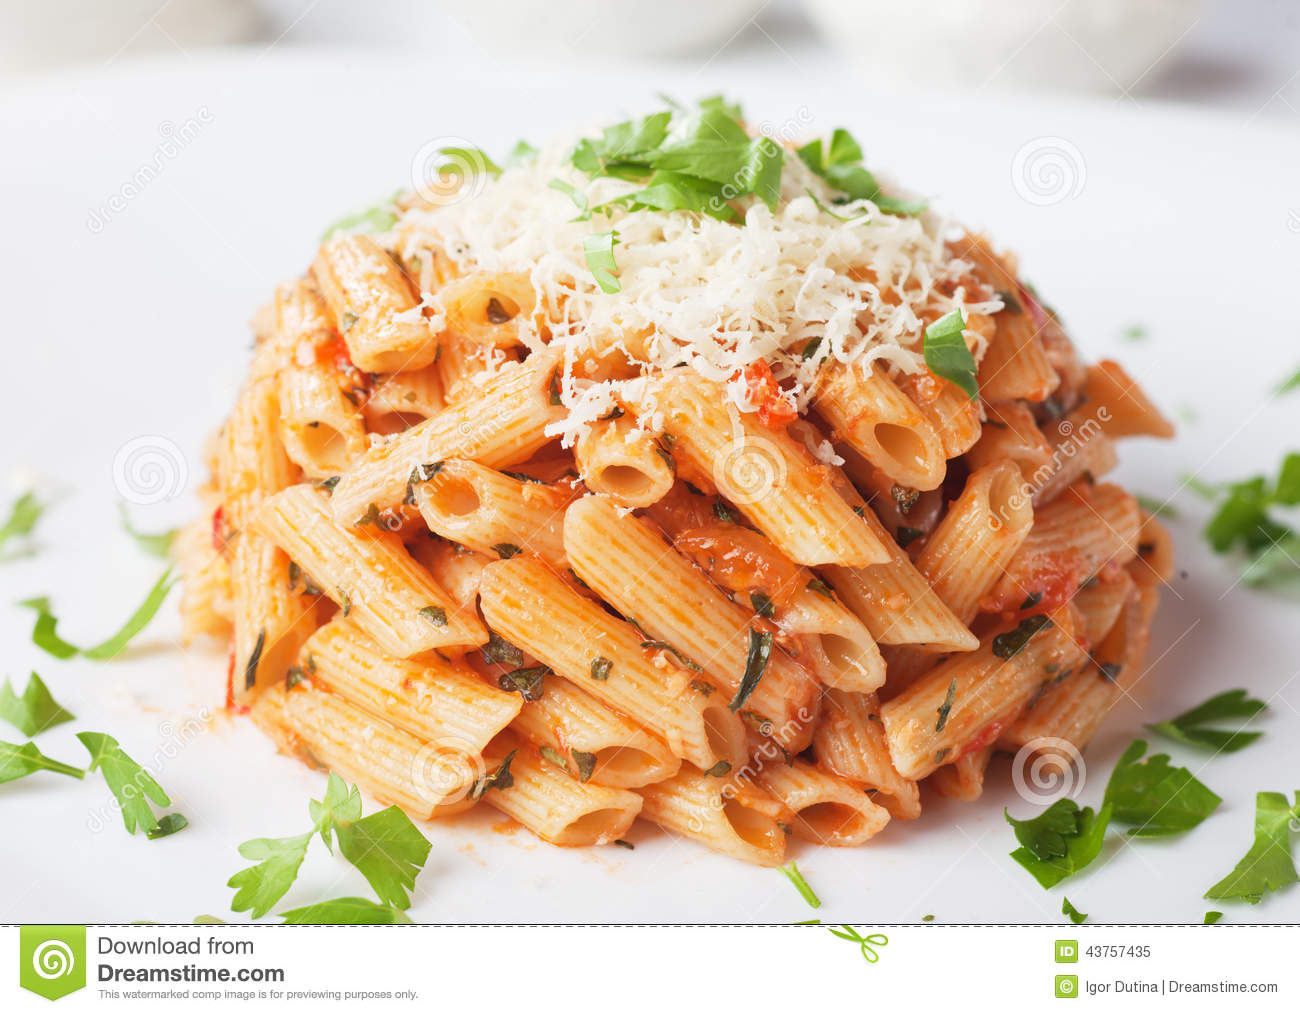 "Spaghetti"" With Tomato Sauce And Parmesan Cheese Recipe — Dishmaps"